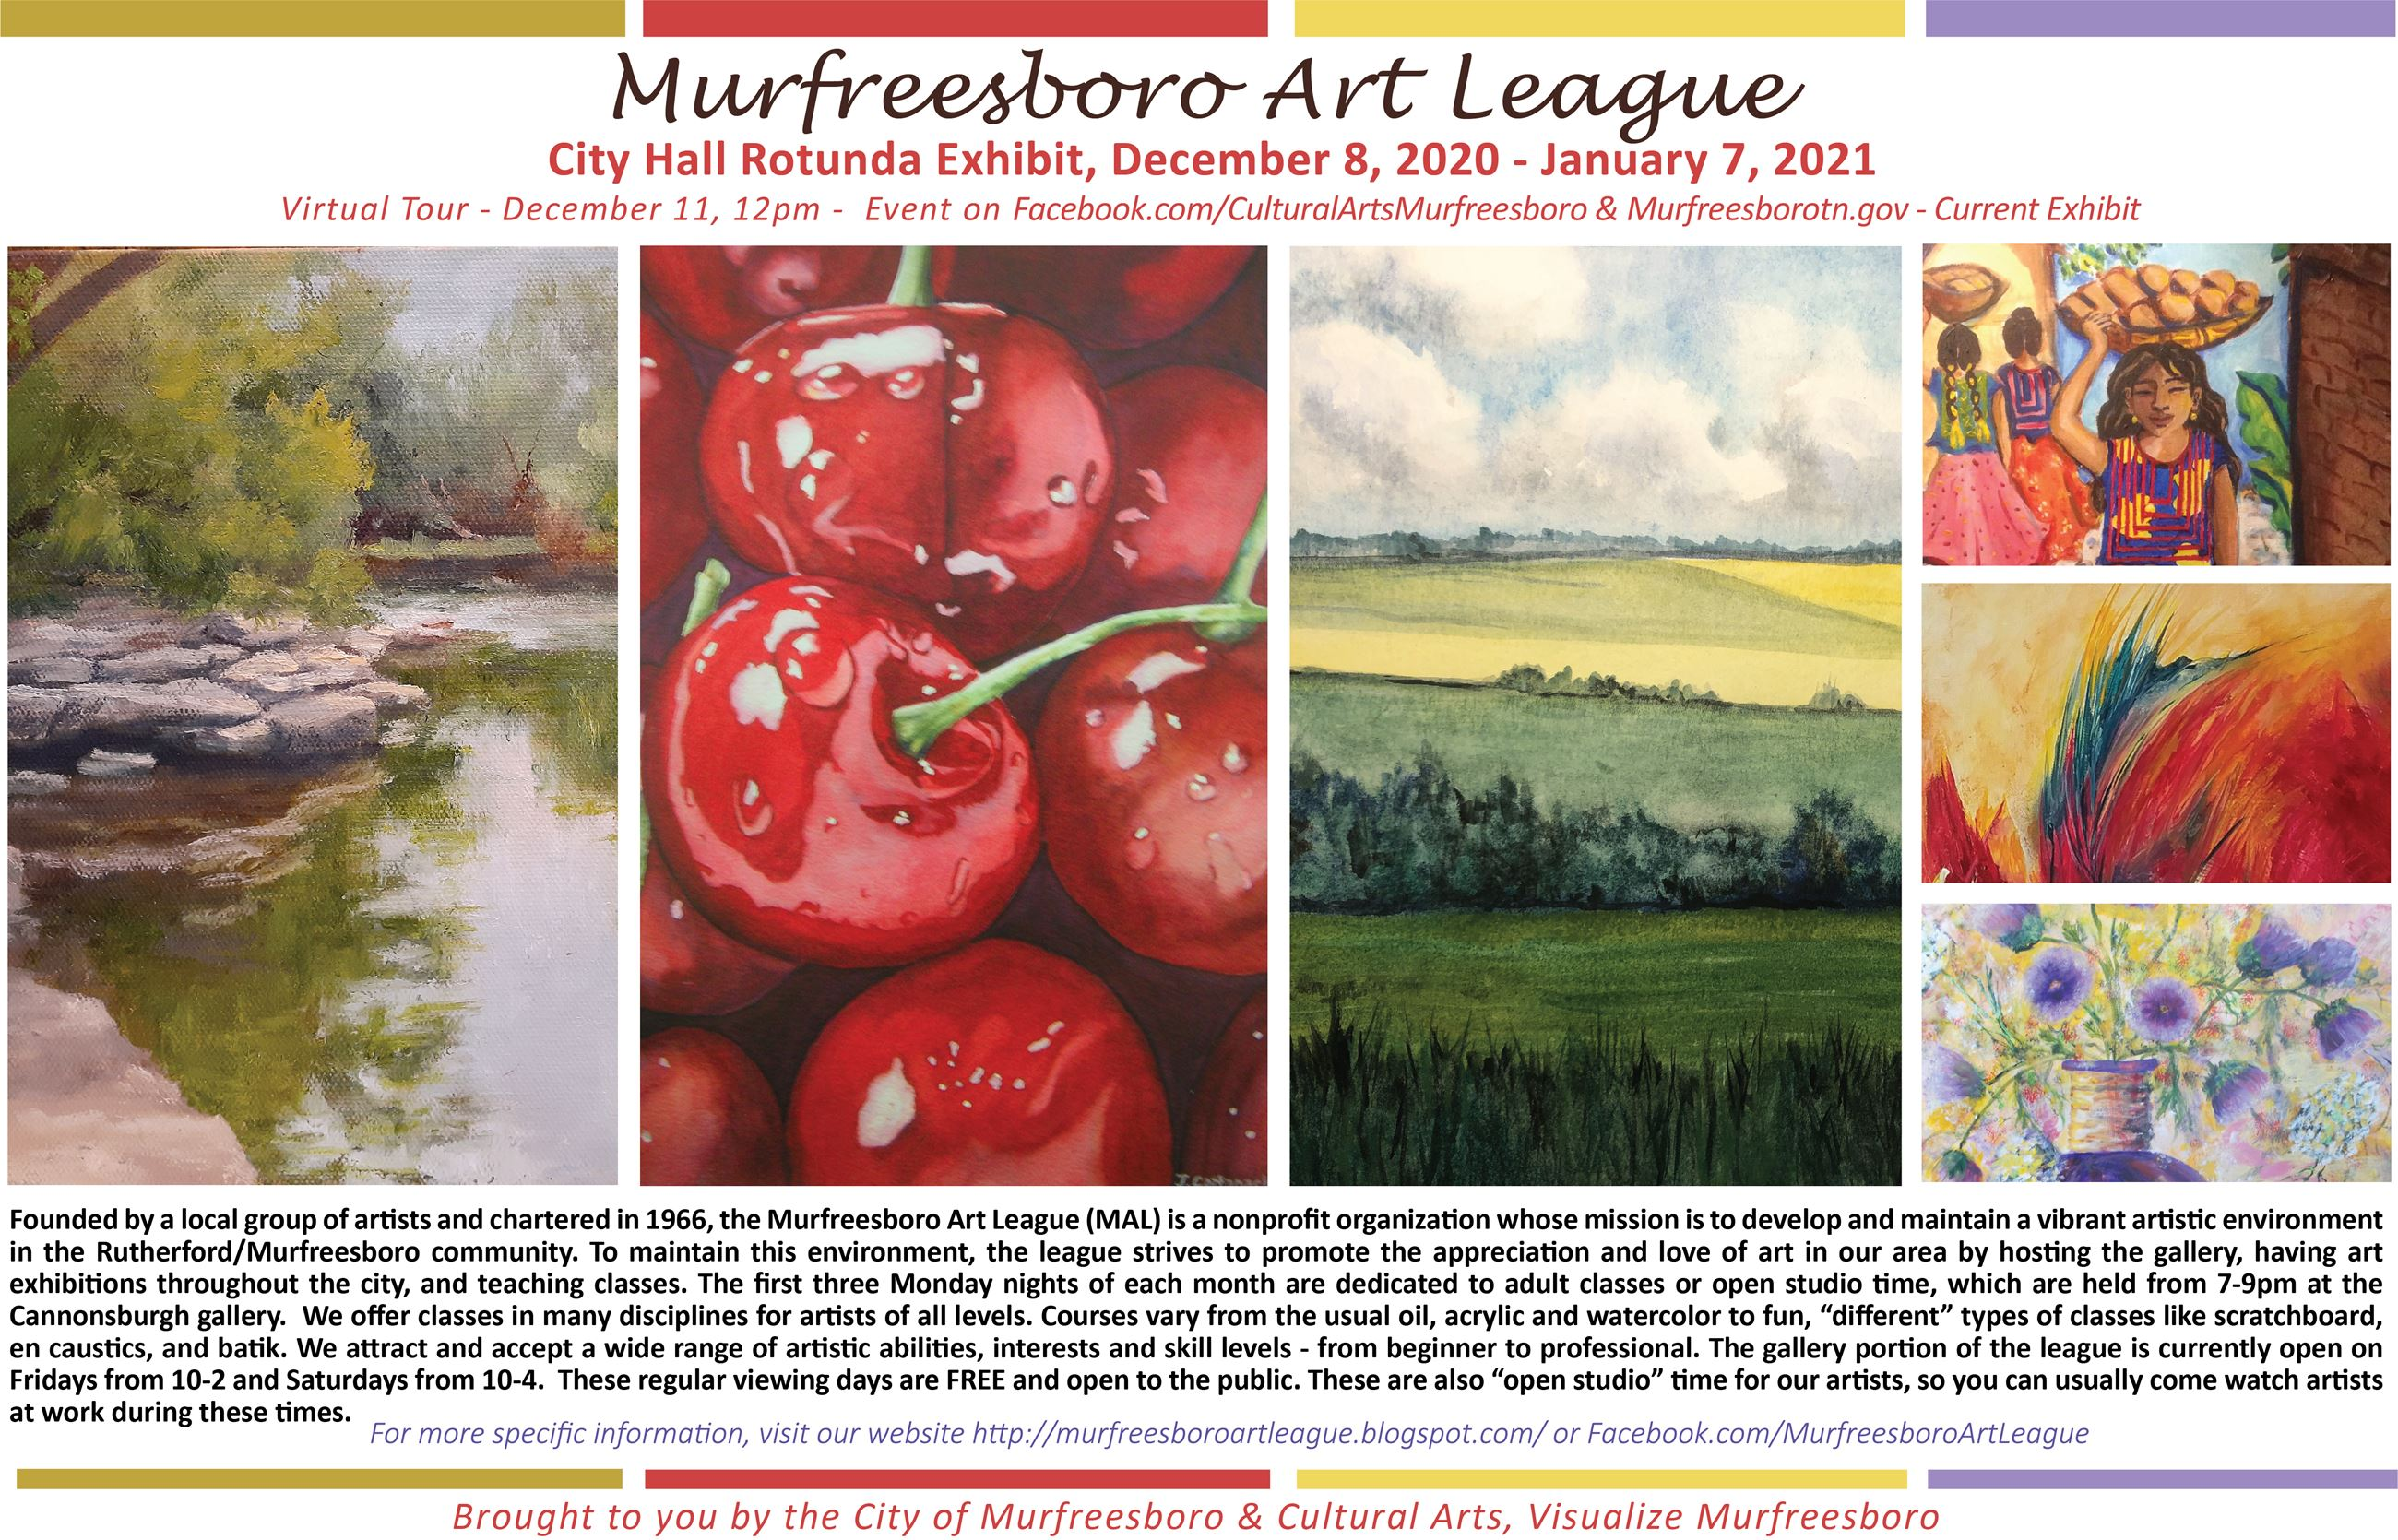 Murfreesboro Art League Art in the Rotunda Information Poster